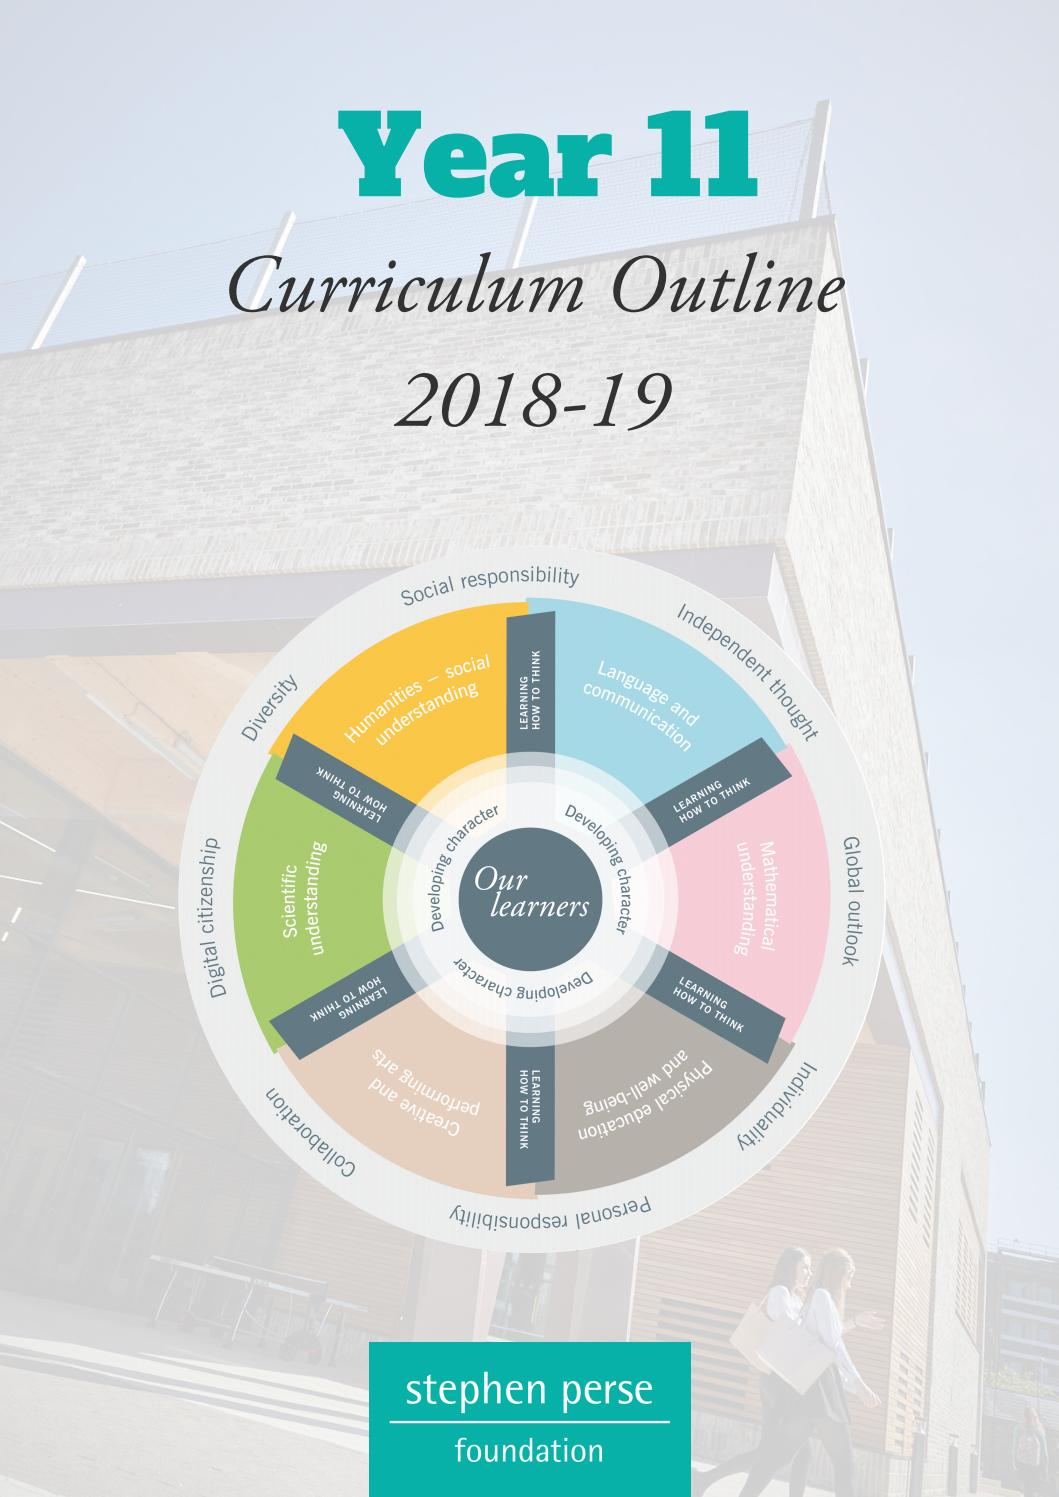 Year 11 Curriculum Outline 2018-19 by Stephen Perse